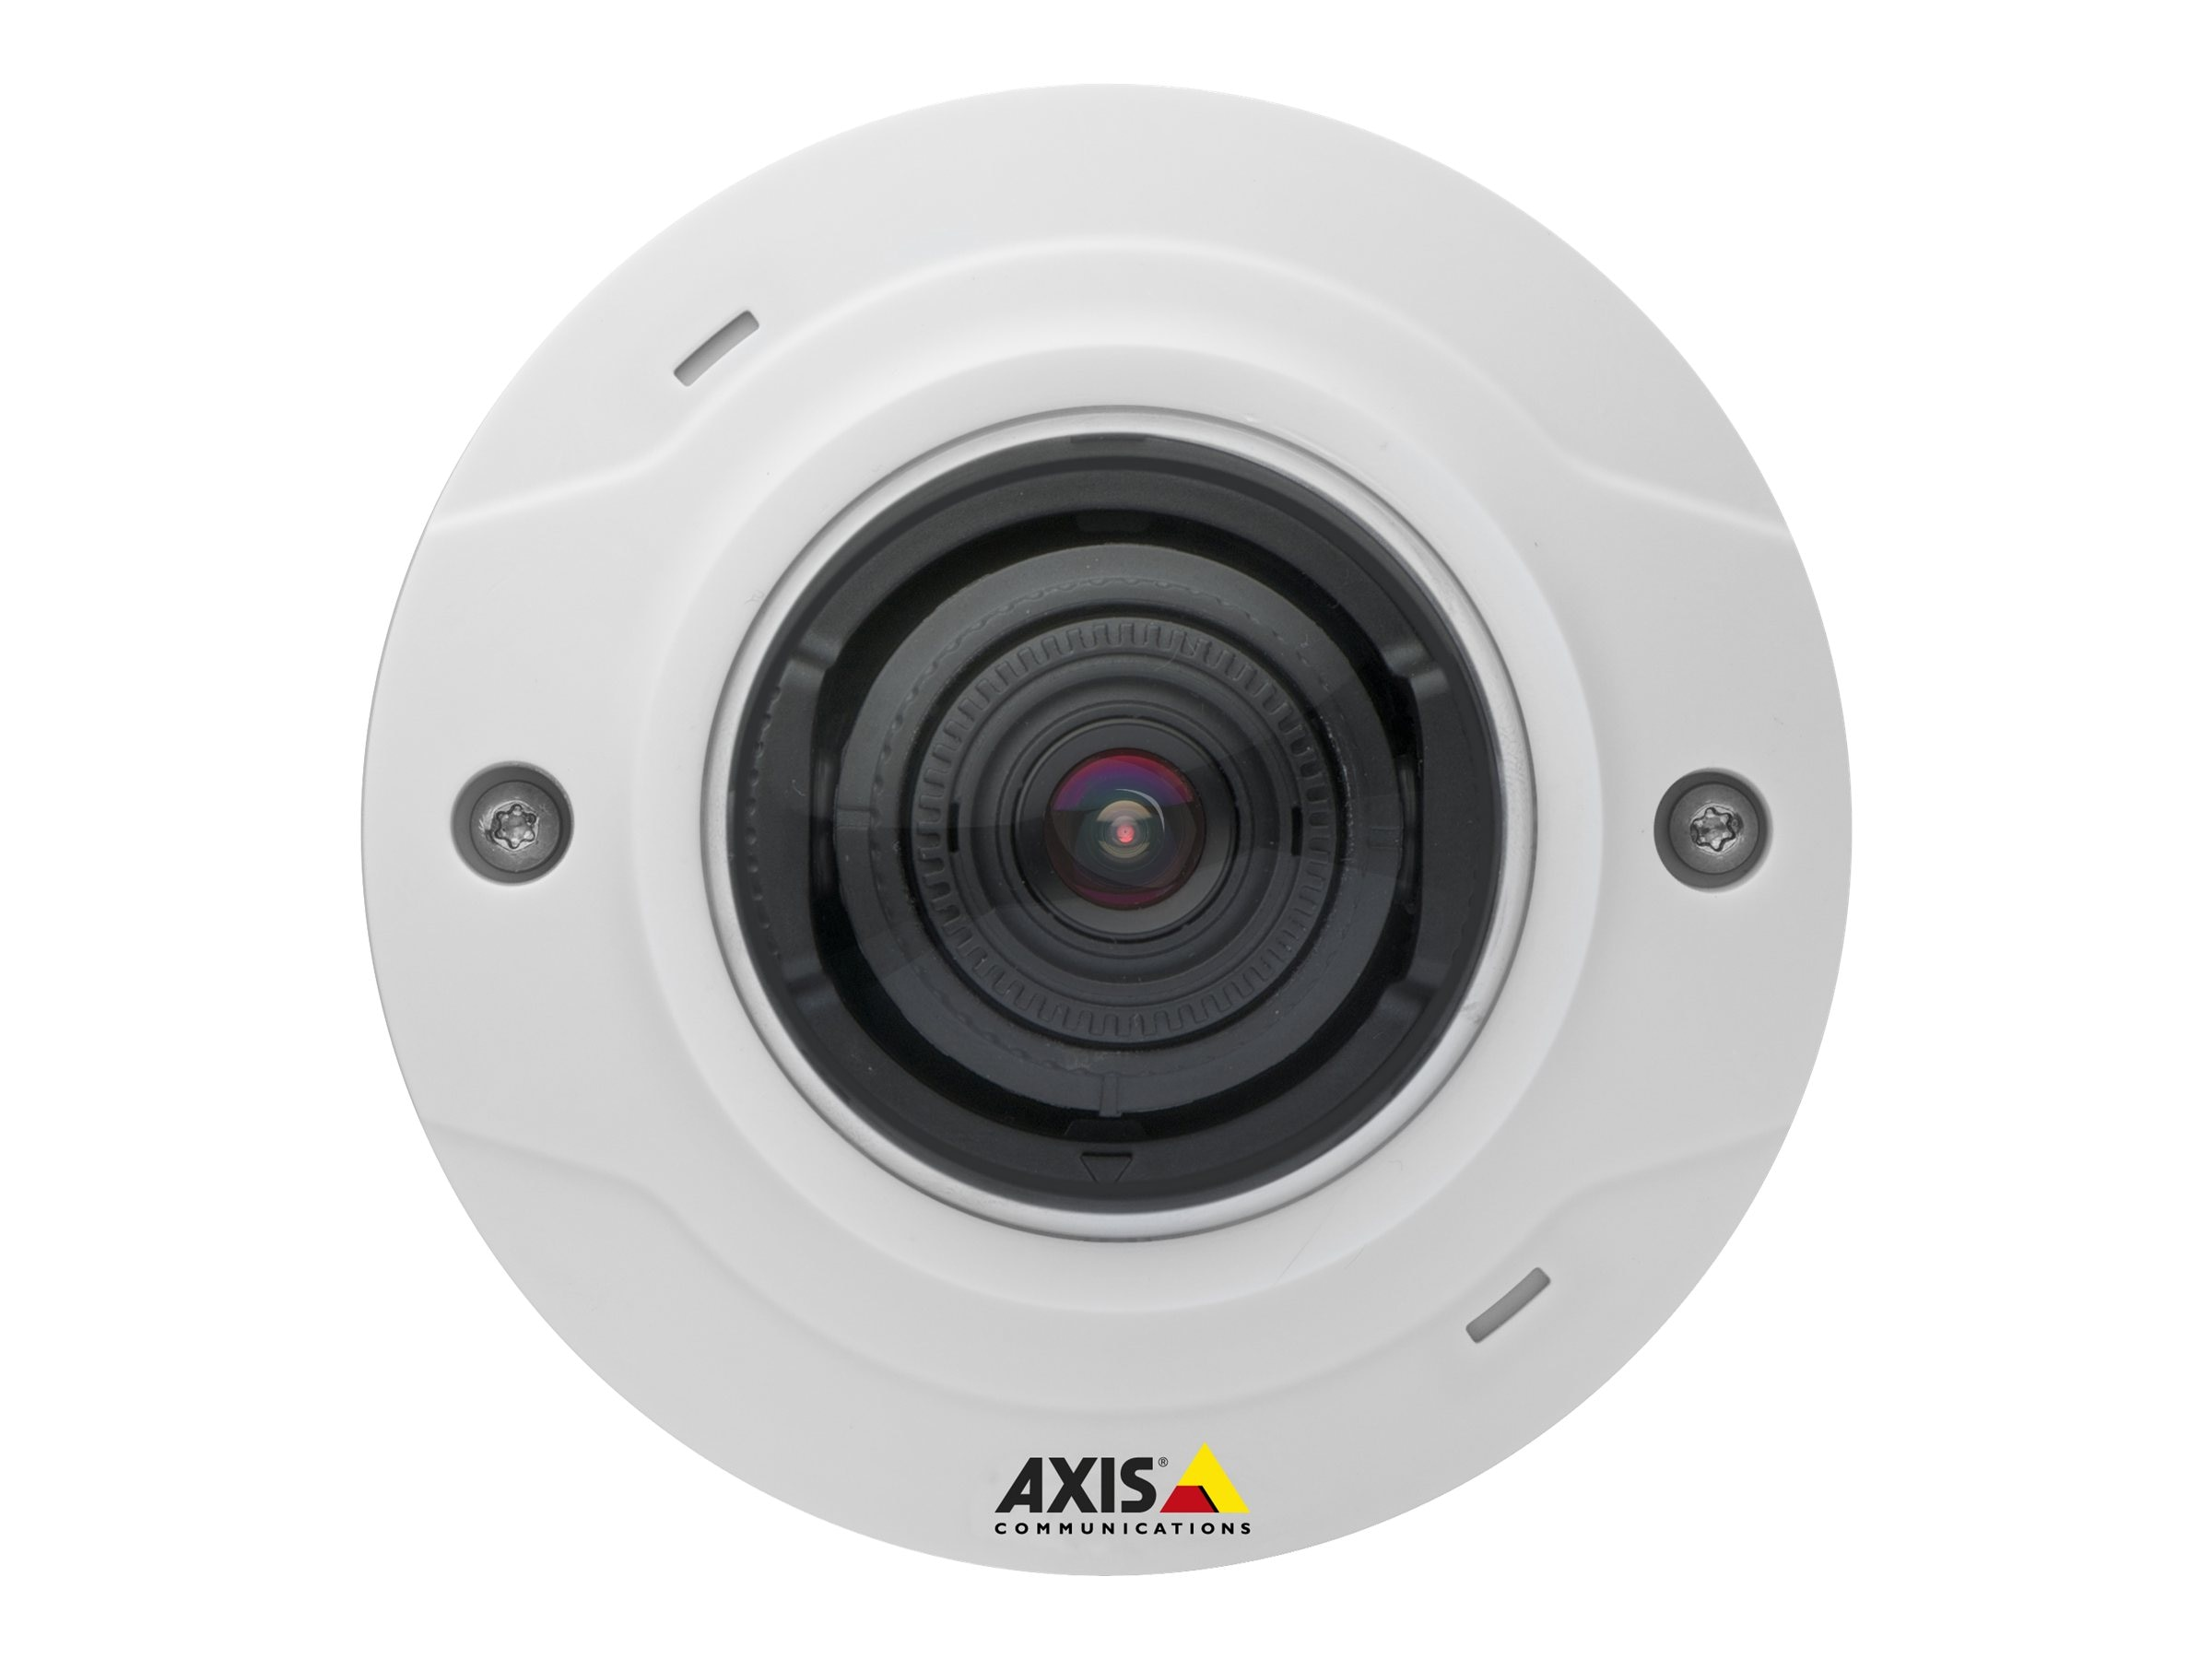 Axis Communications 0516-001 Image 1